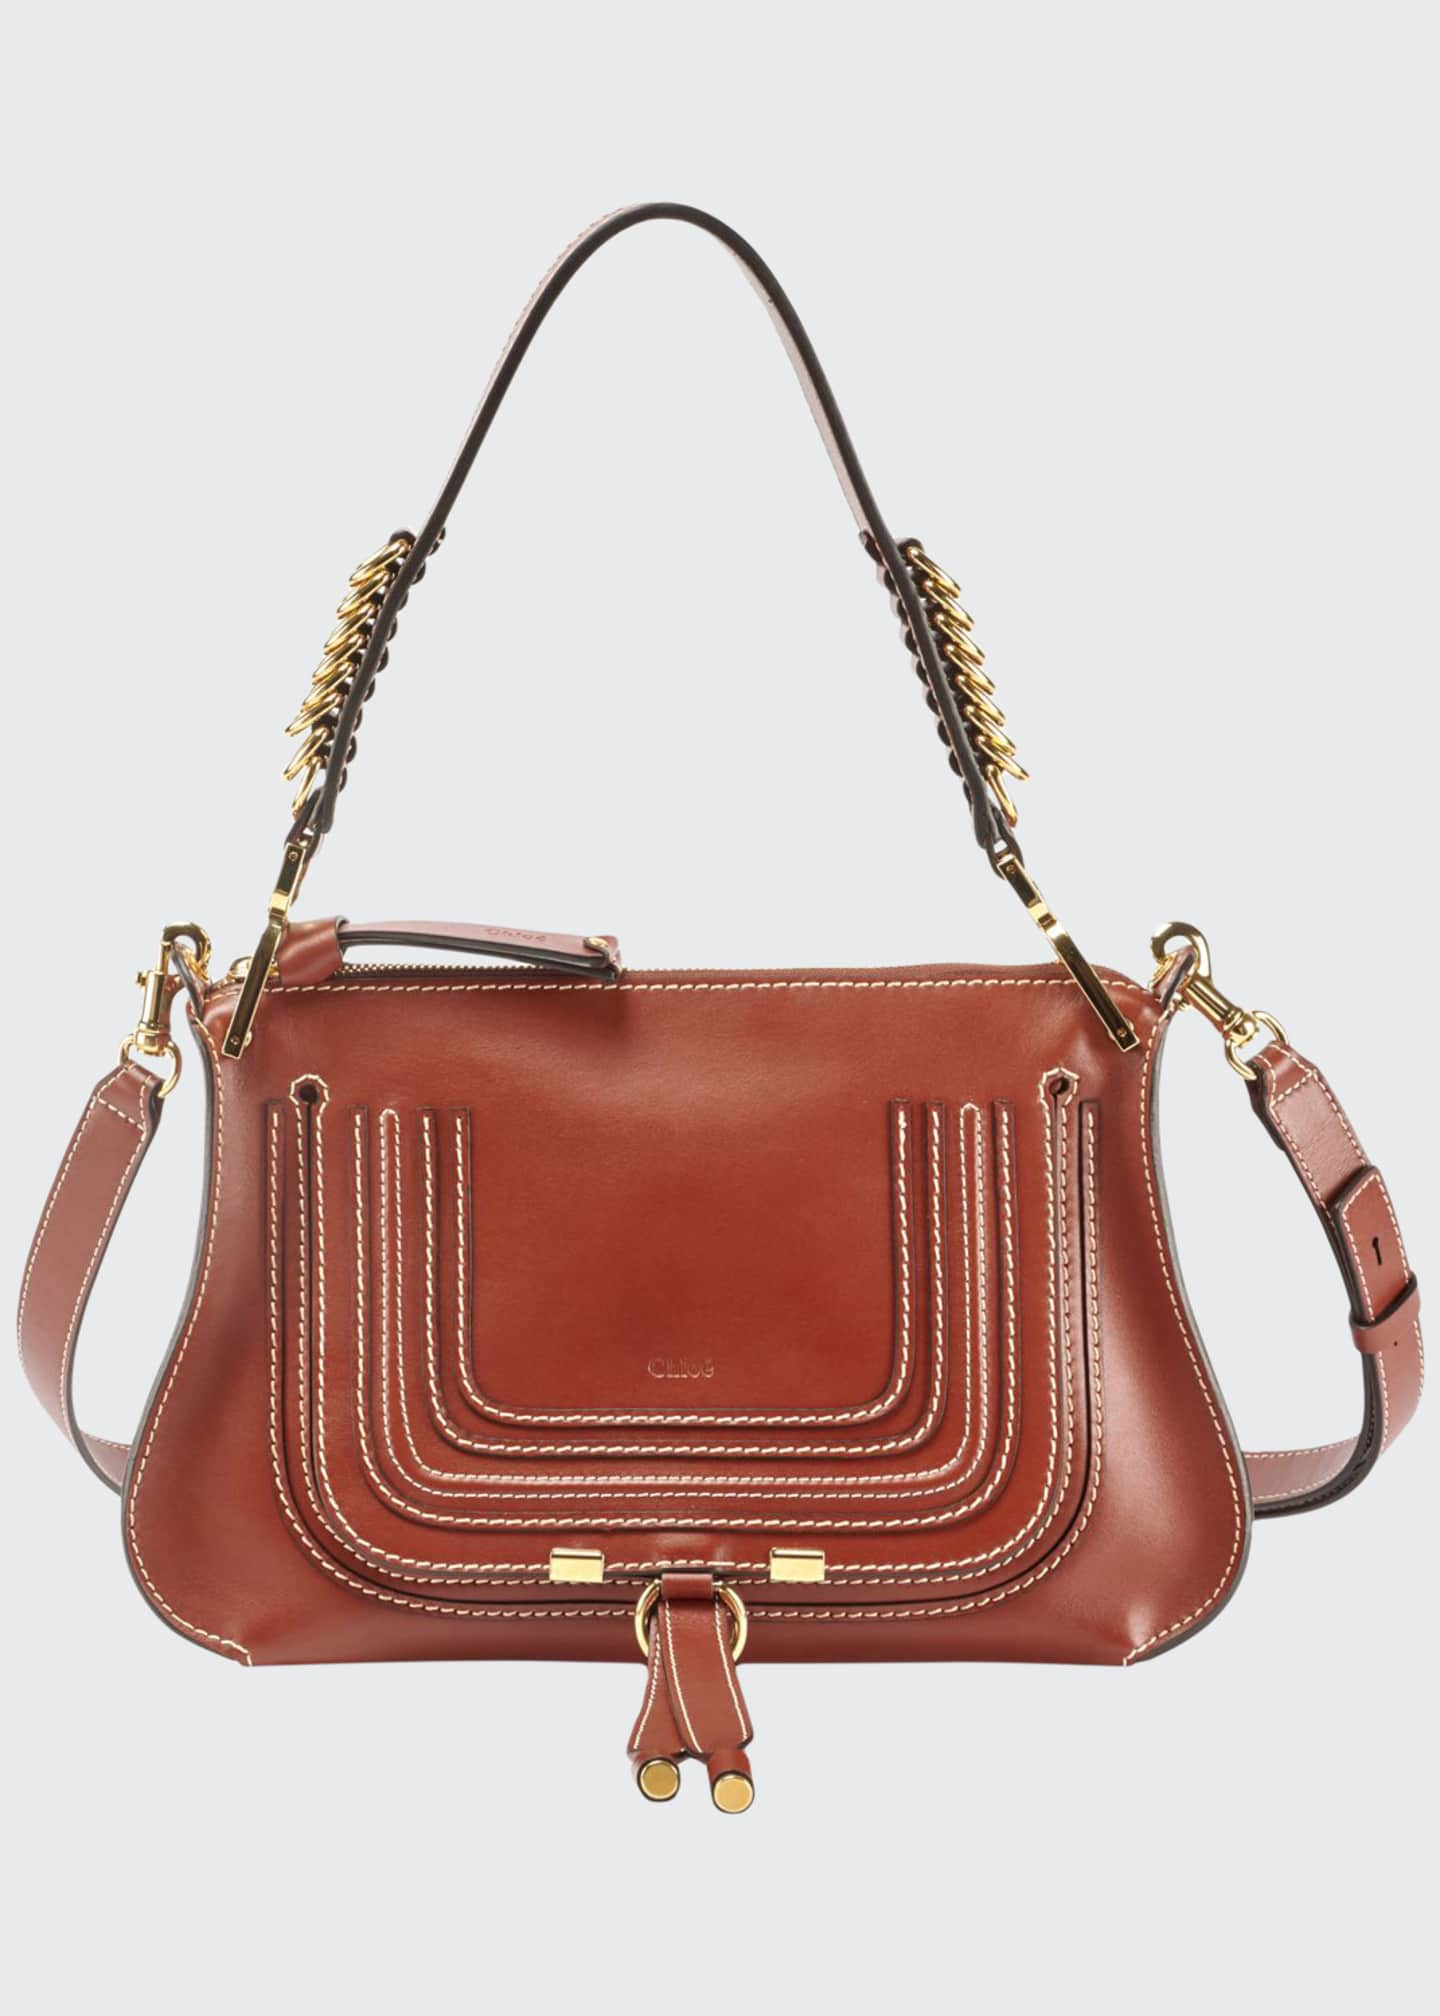 Chloe Marcie Saddle Shiny Shoulder Bag